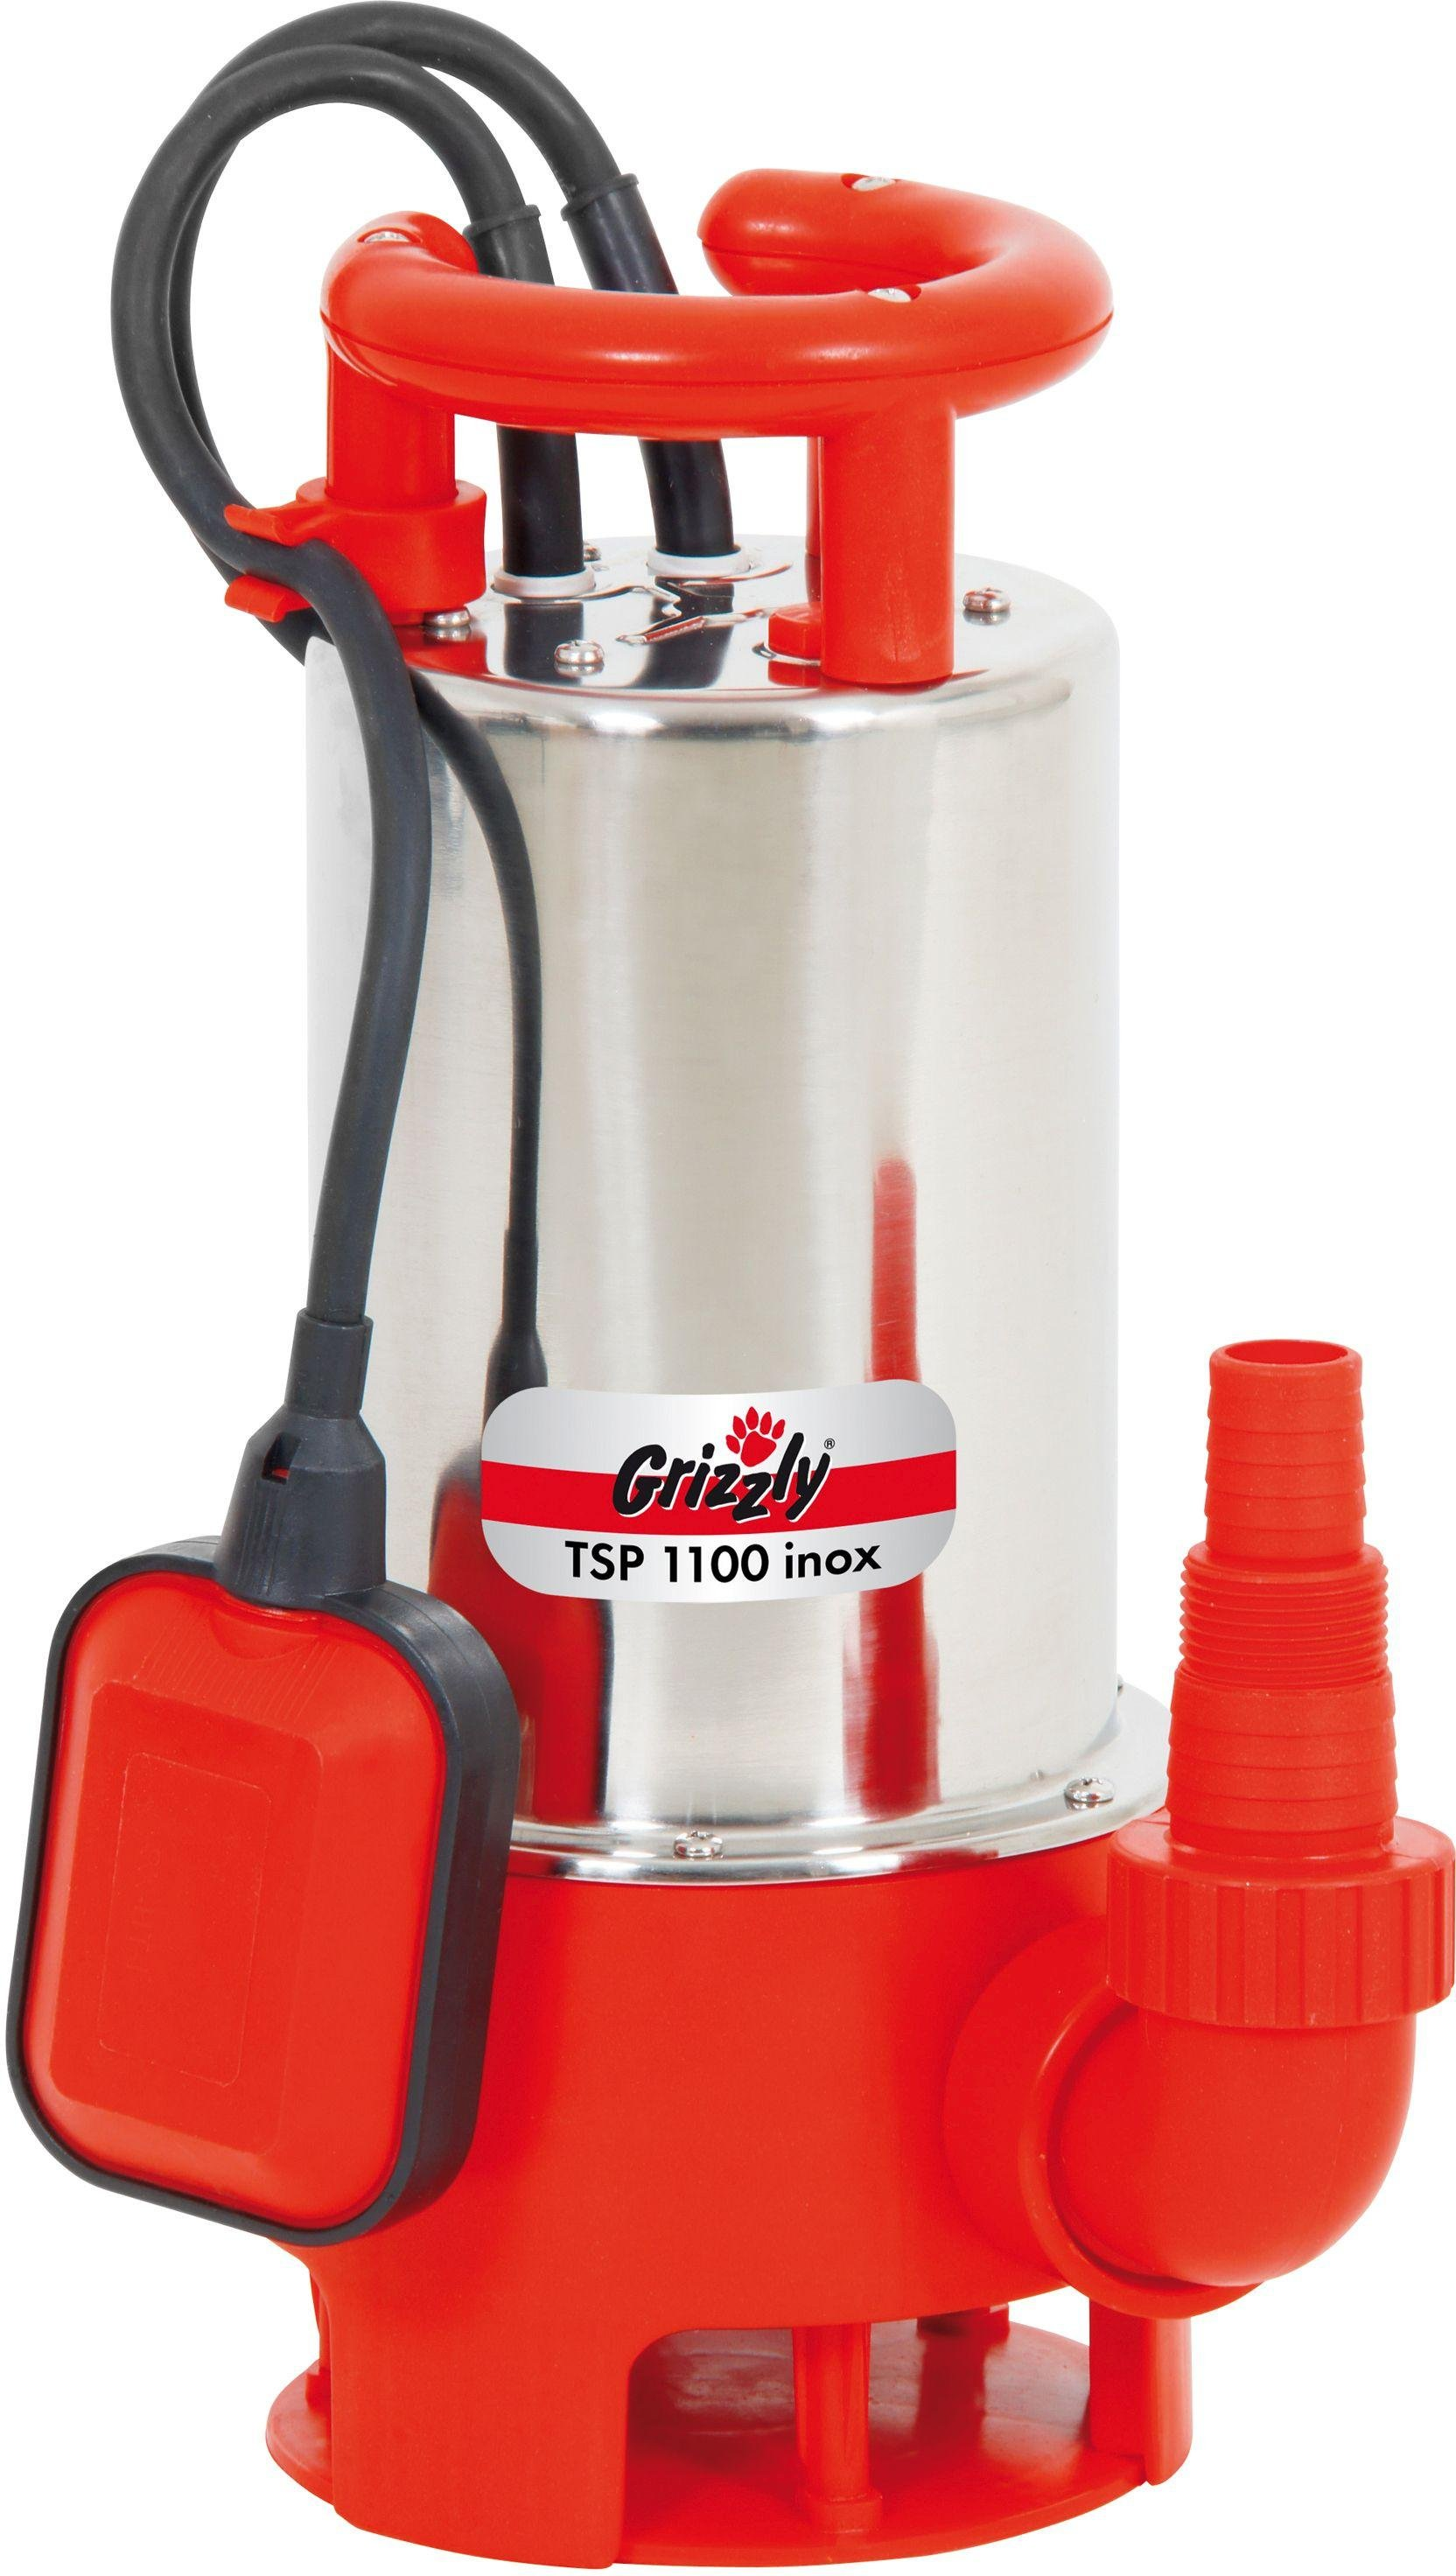 Image of Grizzly Tools - 1100W Inox High Pressure Pump